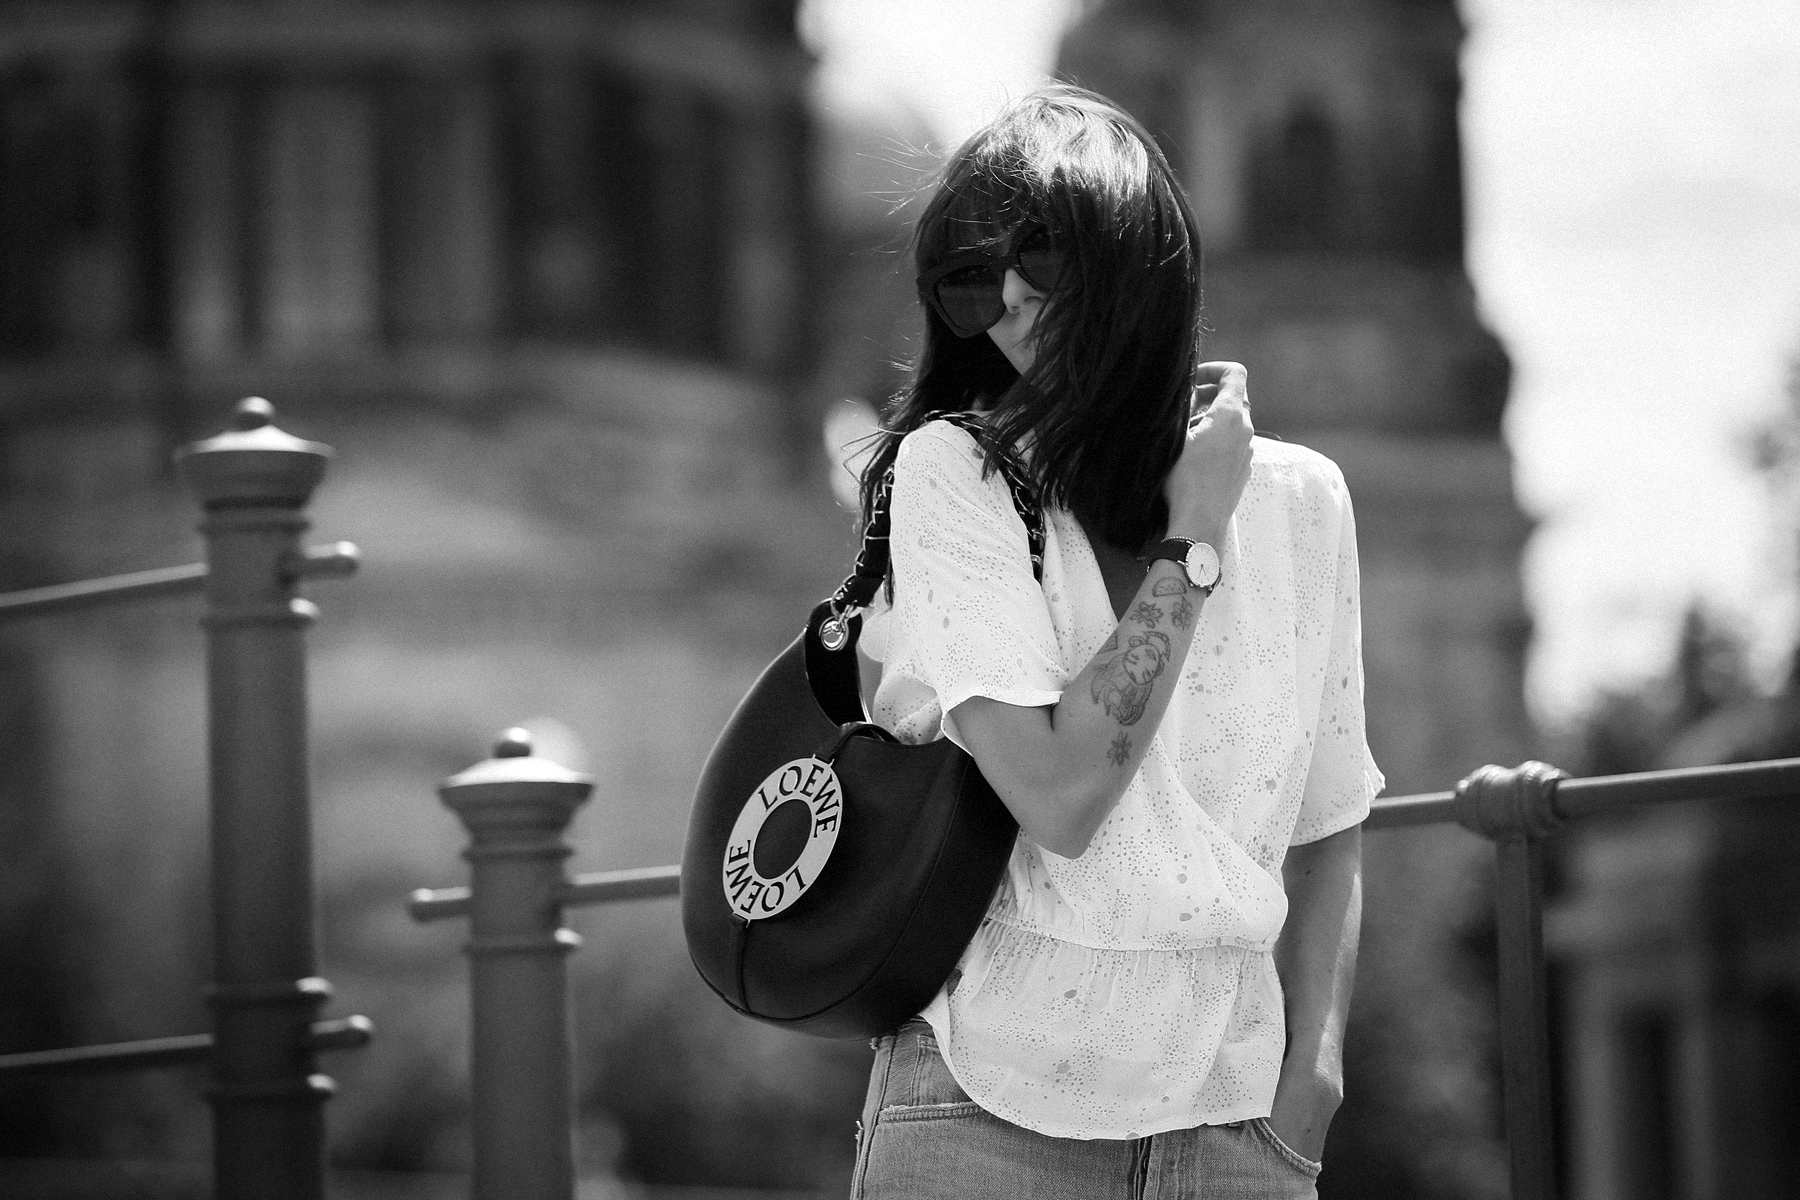 outfit berlin dom museumsinsel denim white blouse parisienne mbym jeanne damas style bangs brunette chic look outfitblogger breuninger loewe joyce bag mcm sunglasses summer german fashion blogger cats & dogs modeblog ricarda schernus max bechmann foto 2